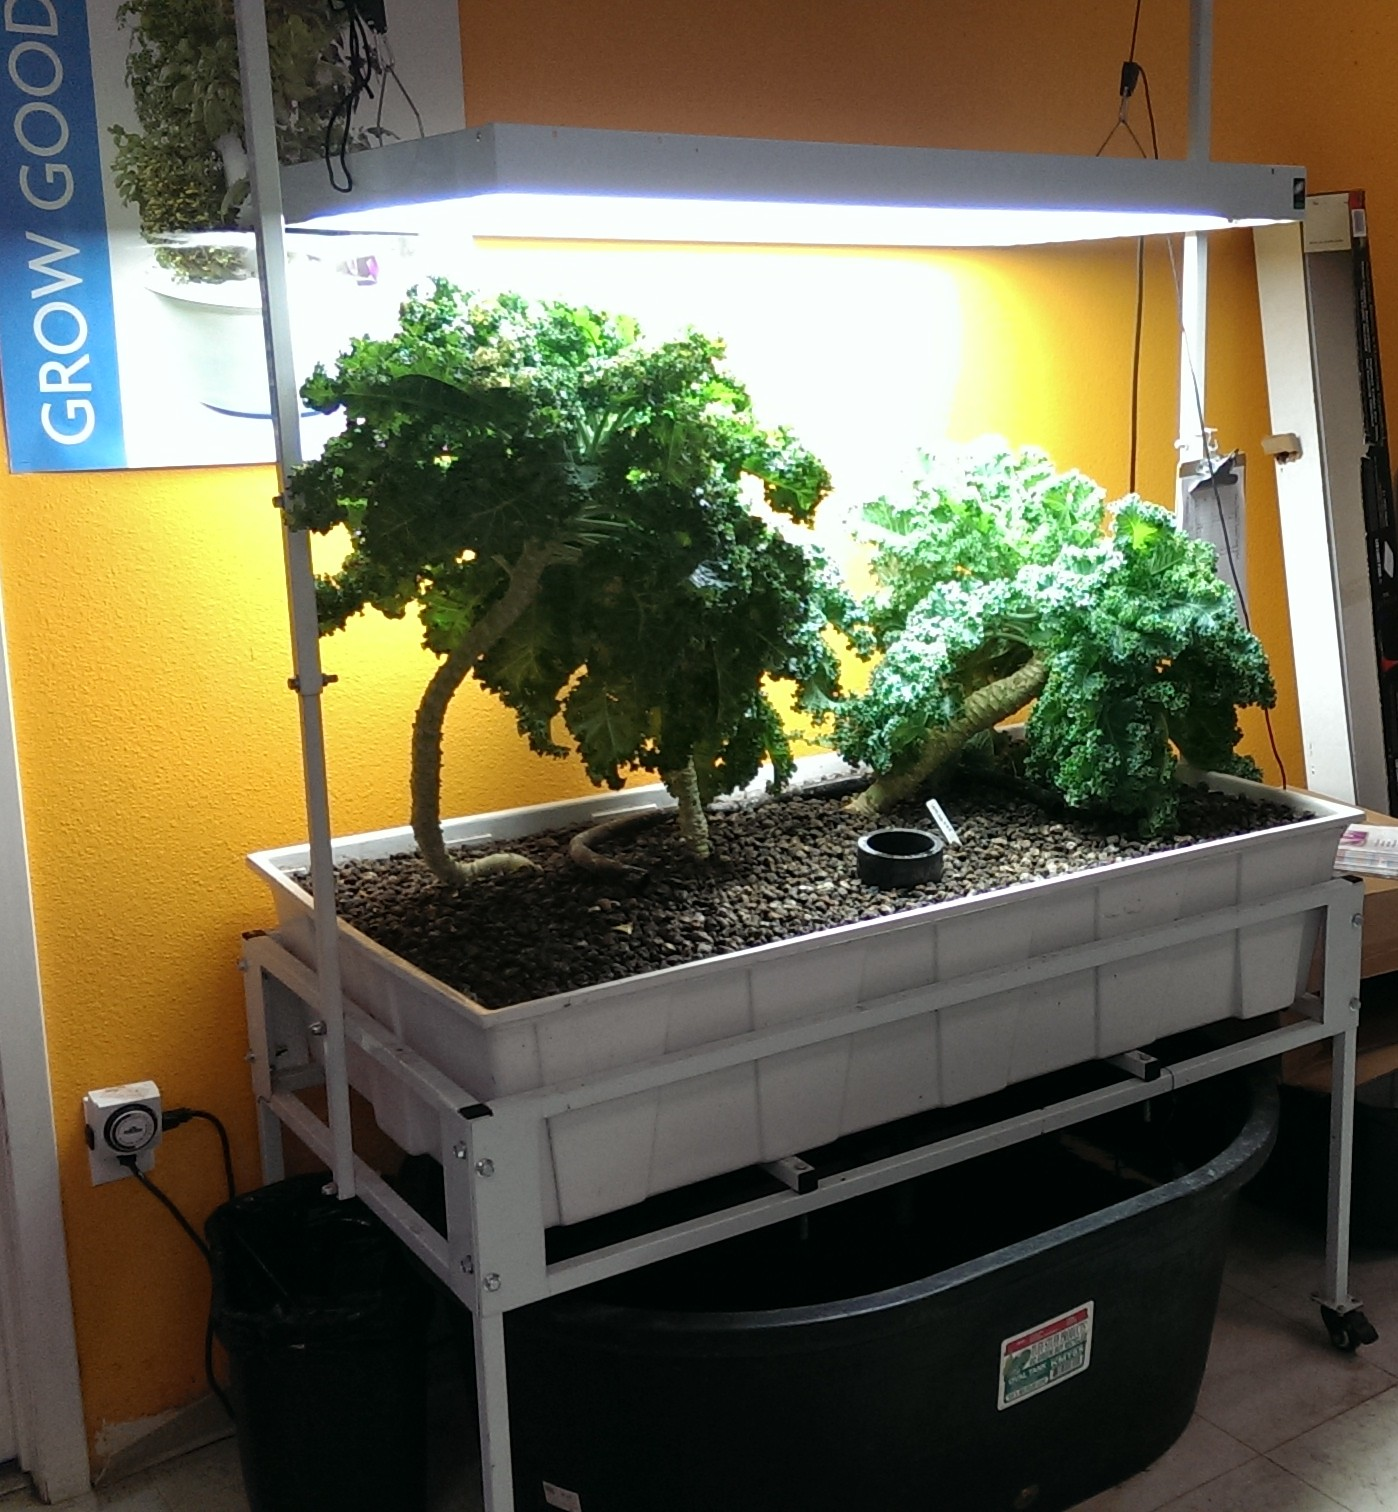 Coming Soon Brite Ideas Aquaponics Hydroponics Amp Organics